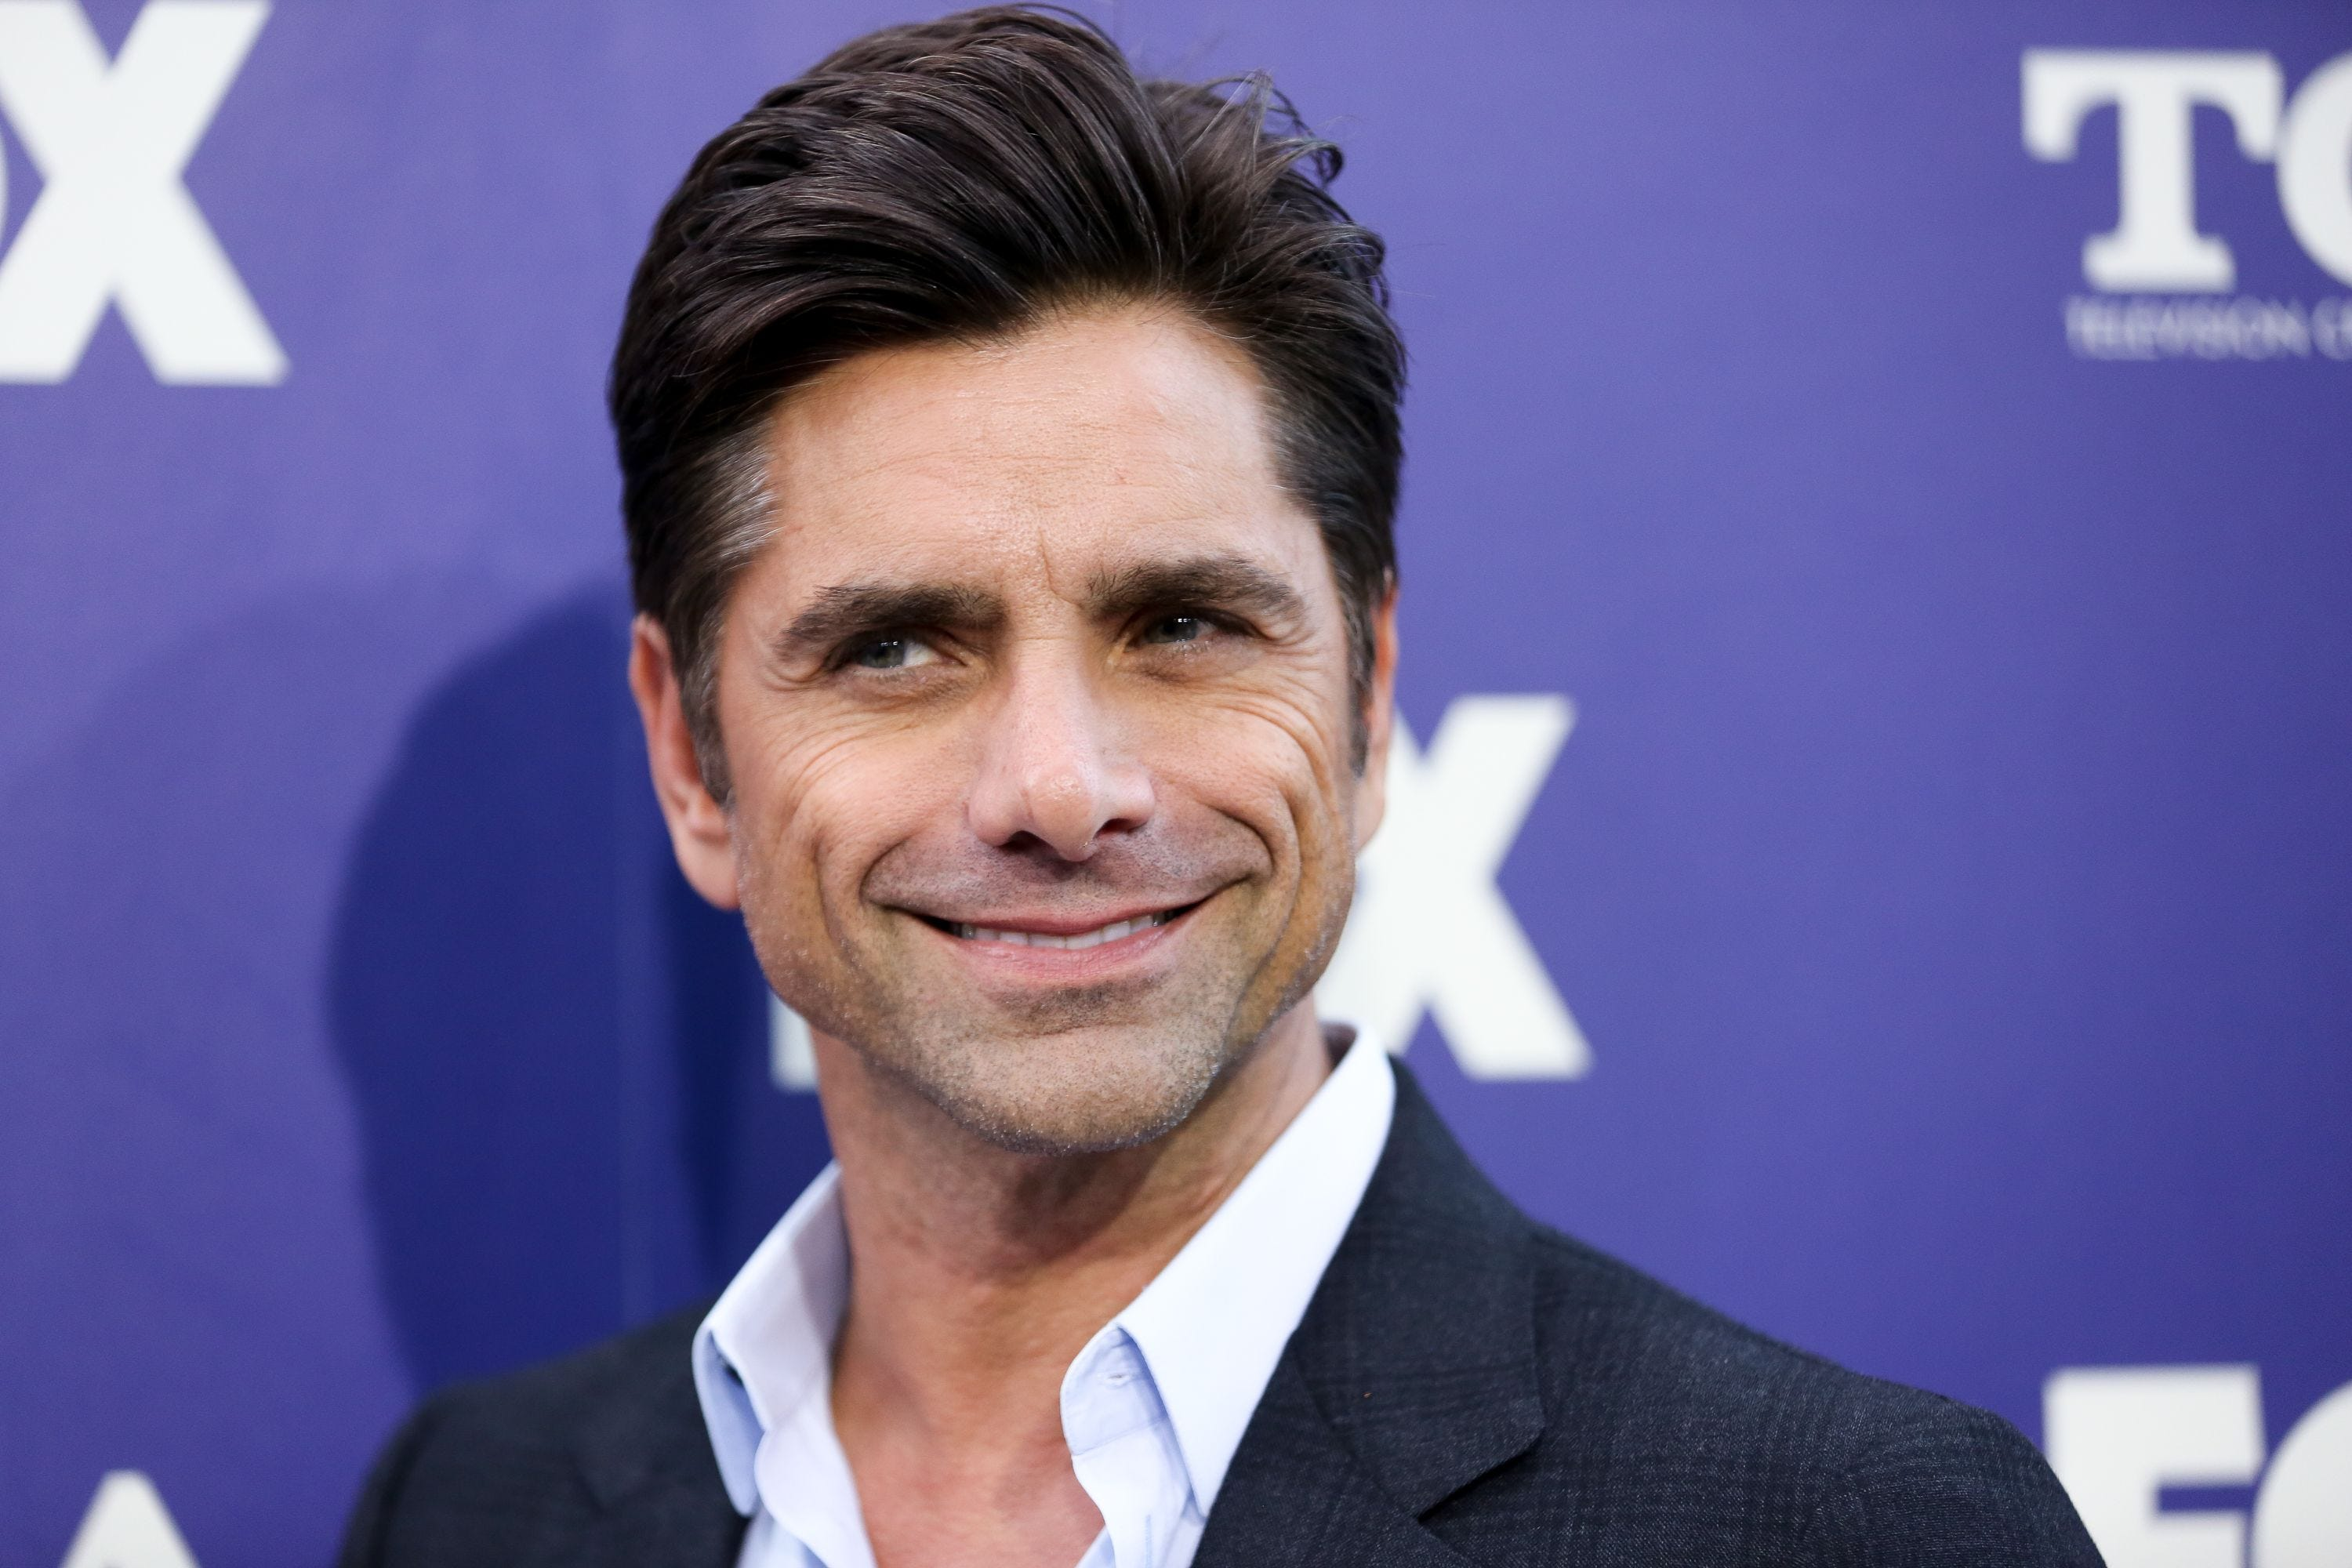 New dad John Stamos reunites with the Beach Boys for emotional Capitol Fourth concert